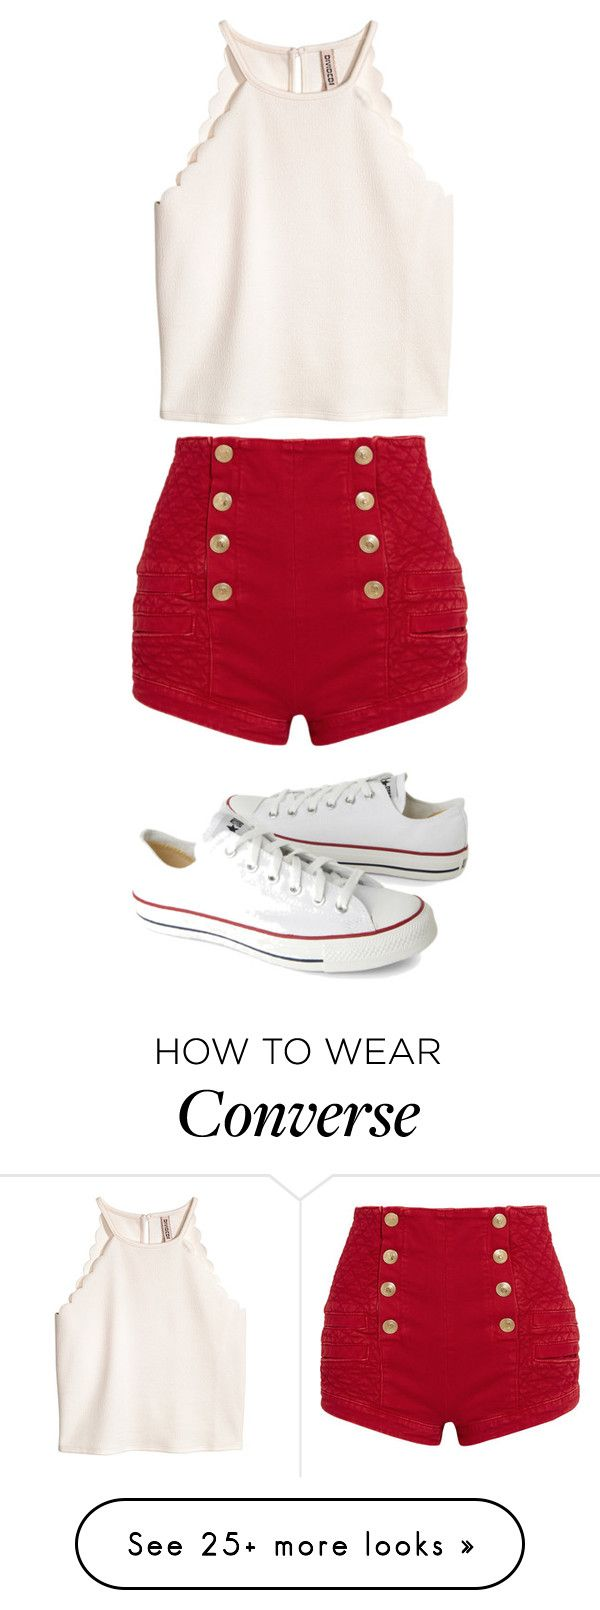 """Untitled #5958"" by bellagioia on Polyvore featuring Pierre Balmain and Converse"